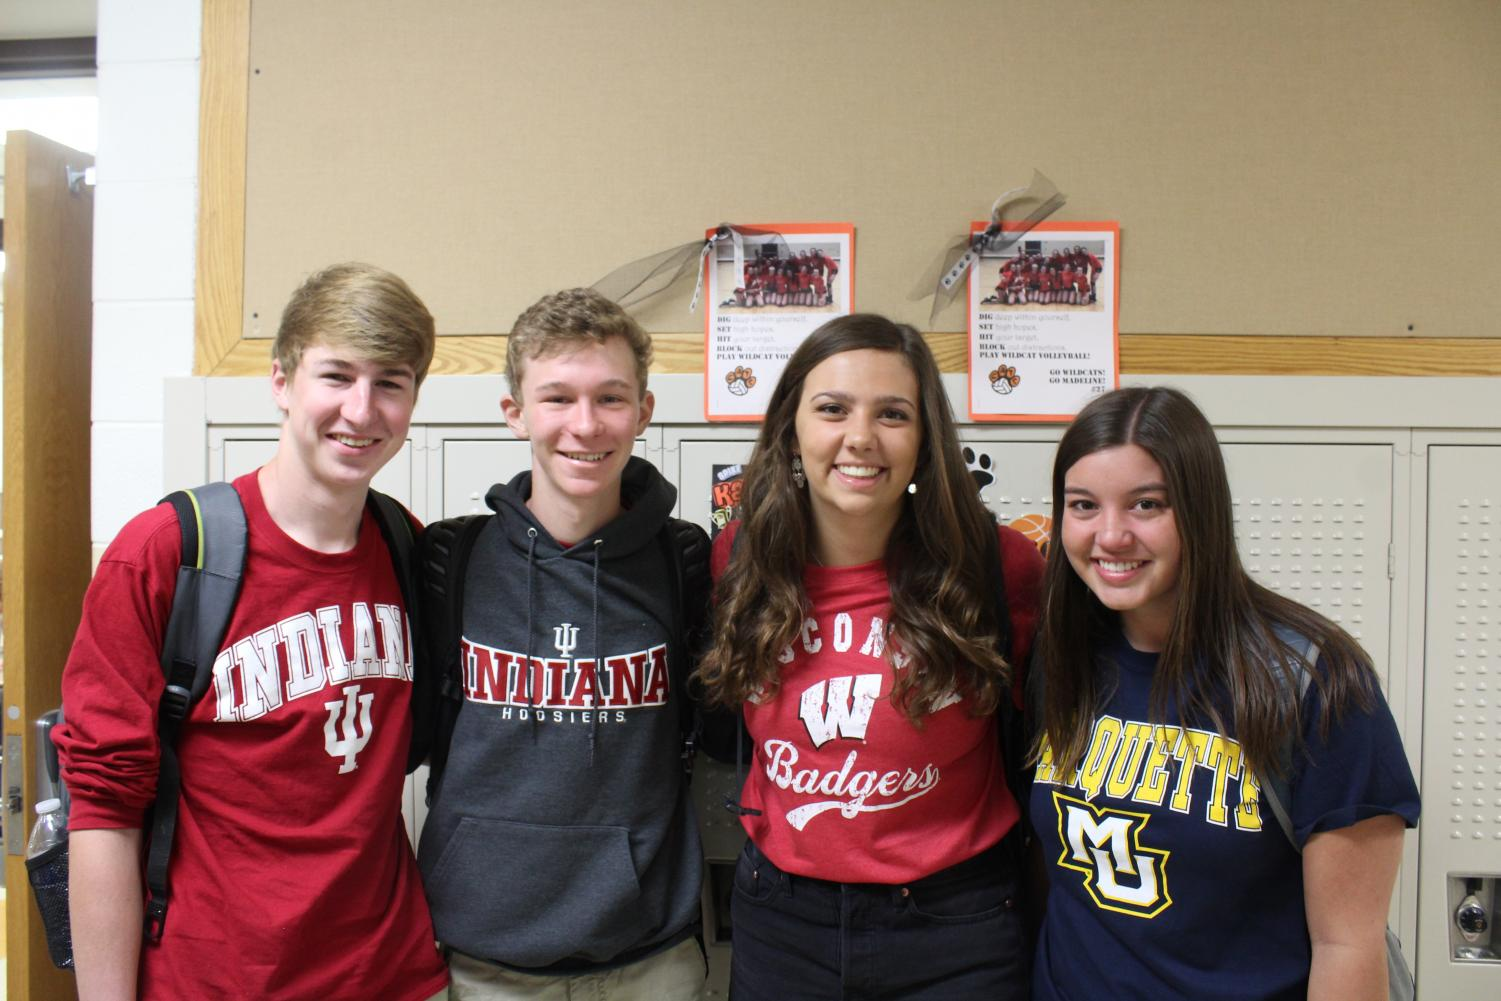 Connor+Landmeier+and+Russell+Skarbek+are+both+attending+Indiana+University%2C+Madeline+Spaulding+is+joining+the+University+of+Wisconsin%2C+and+Chloe+Bleck+is+going+to+Marquette+University.+%0A